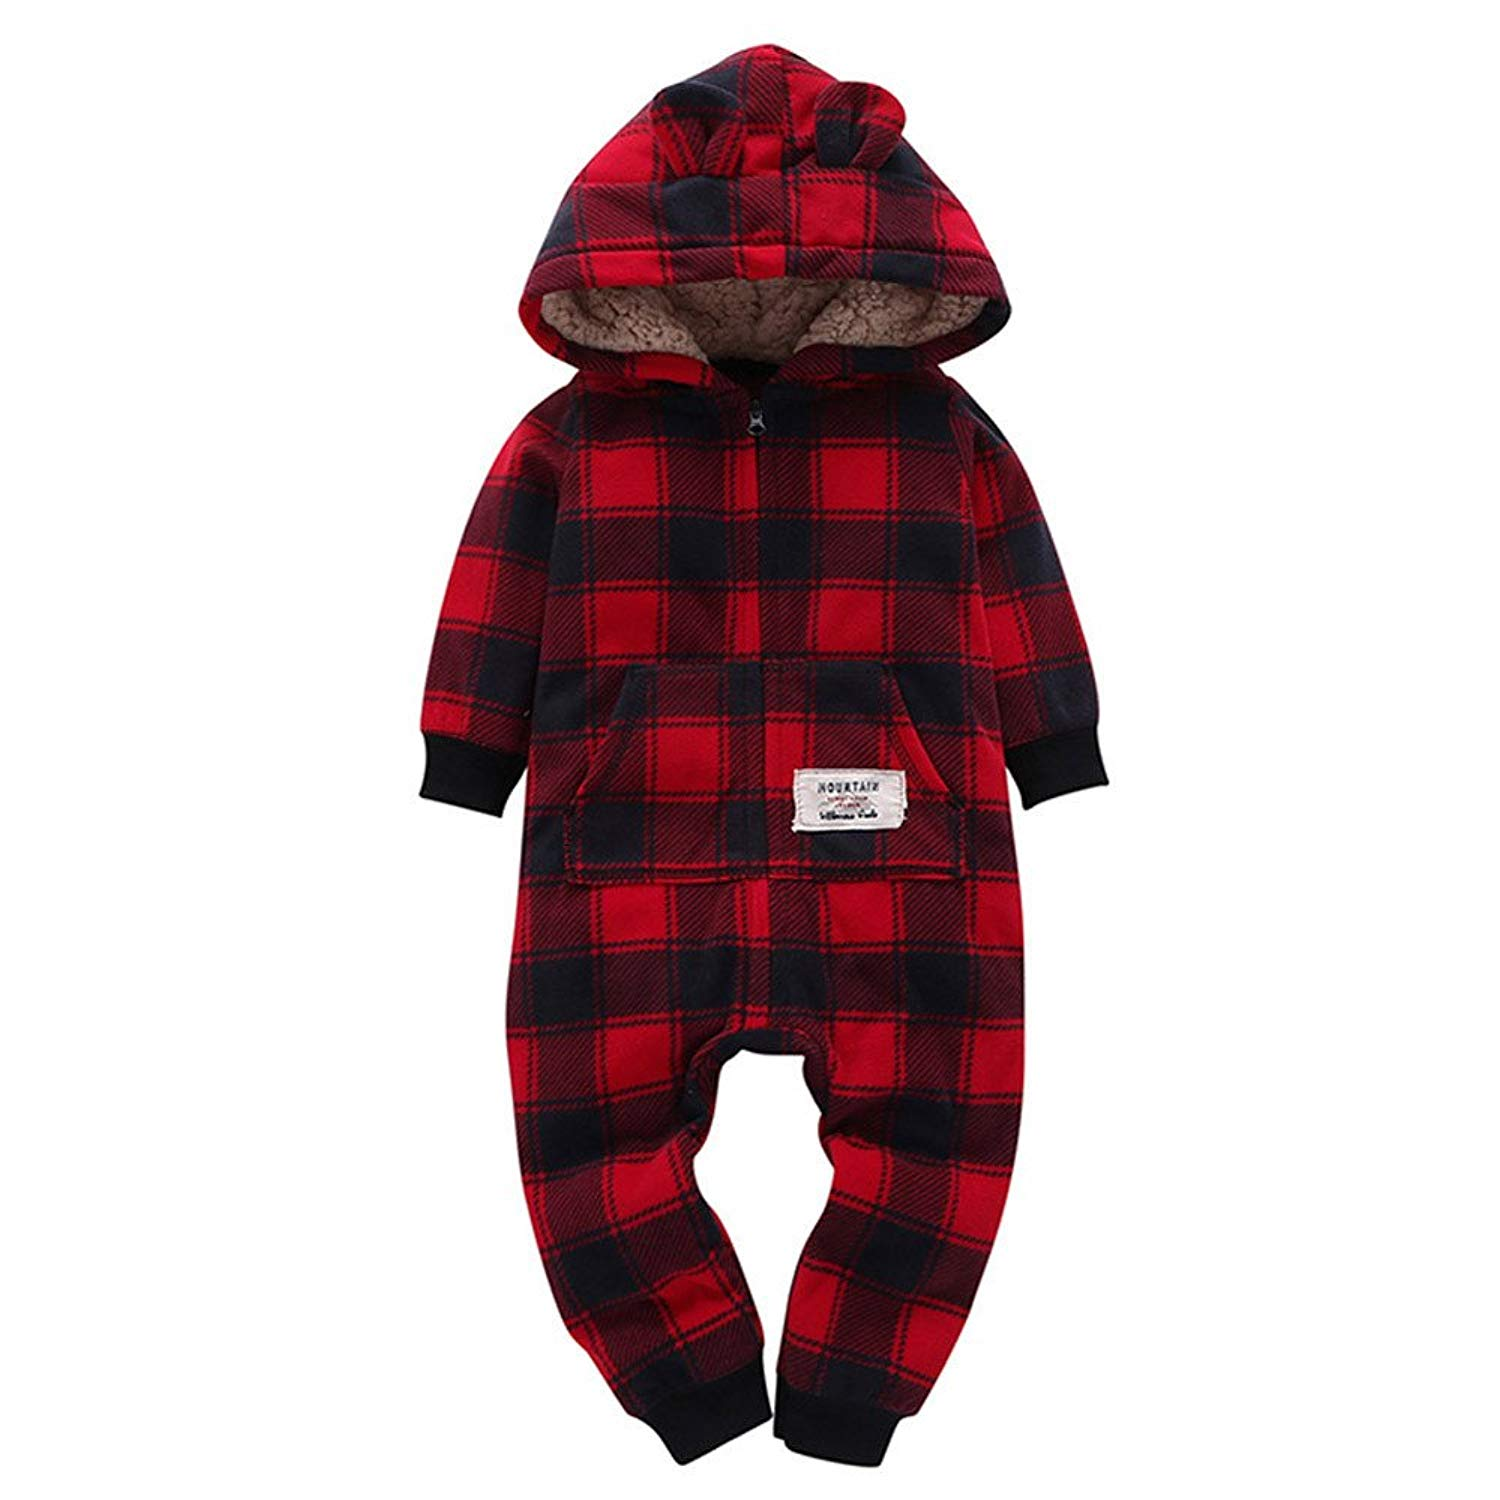 TIFENNY Infant Baby Boys Girls Thicker Lattice Hooded Romper Jumpsuit Outfit